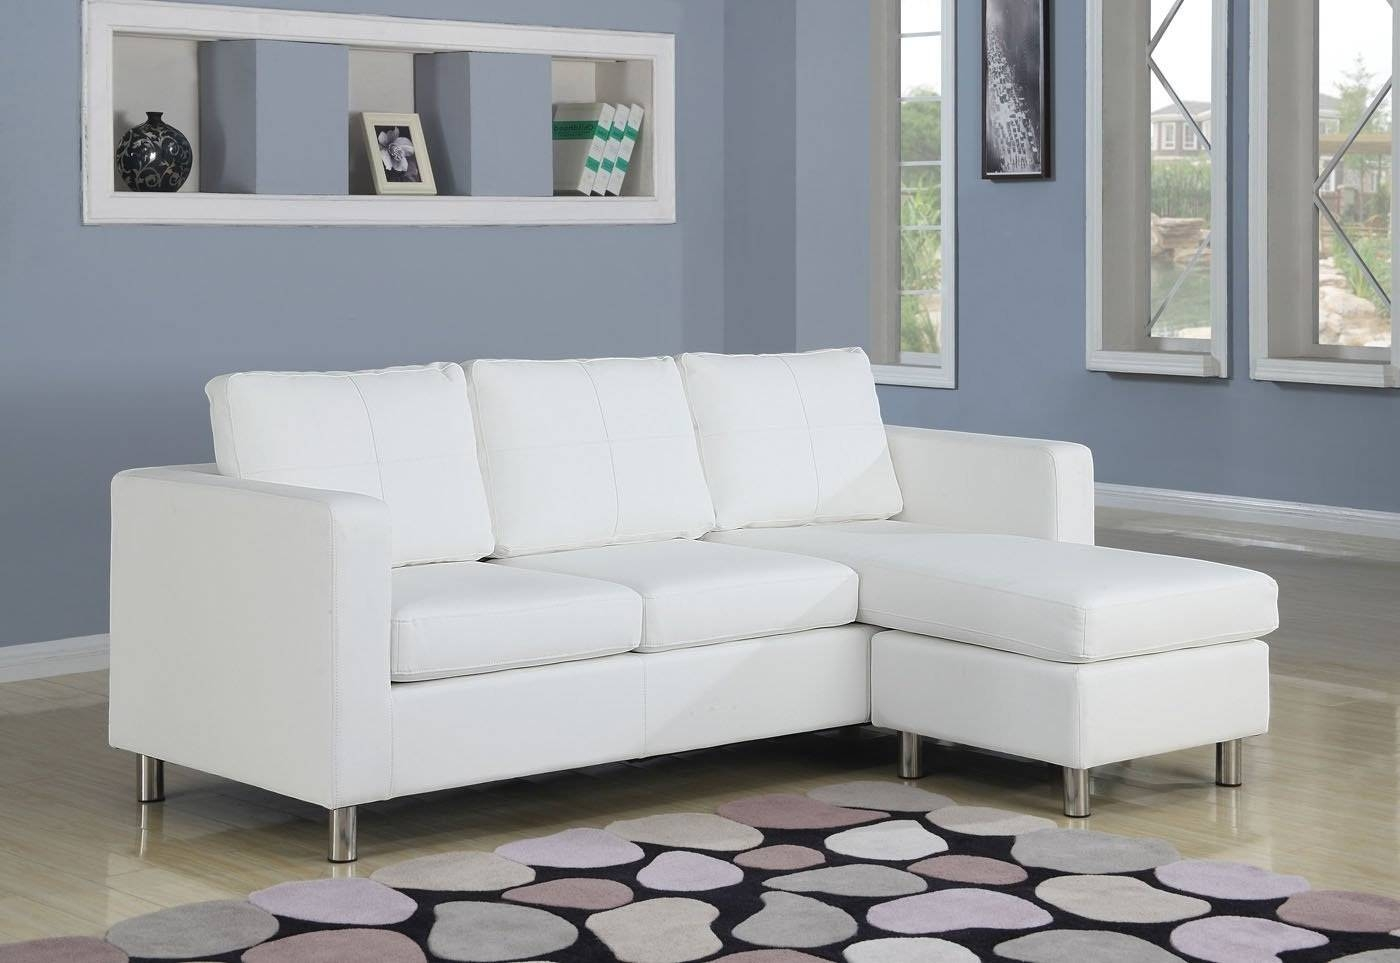 Best Small Sectional Sofa With Chaise 49 On Sofas And Couches for Small Scale Sectional Sofas (Image 3 of 15)